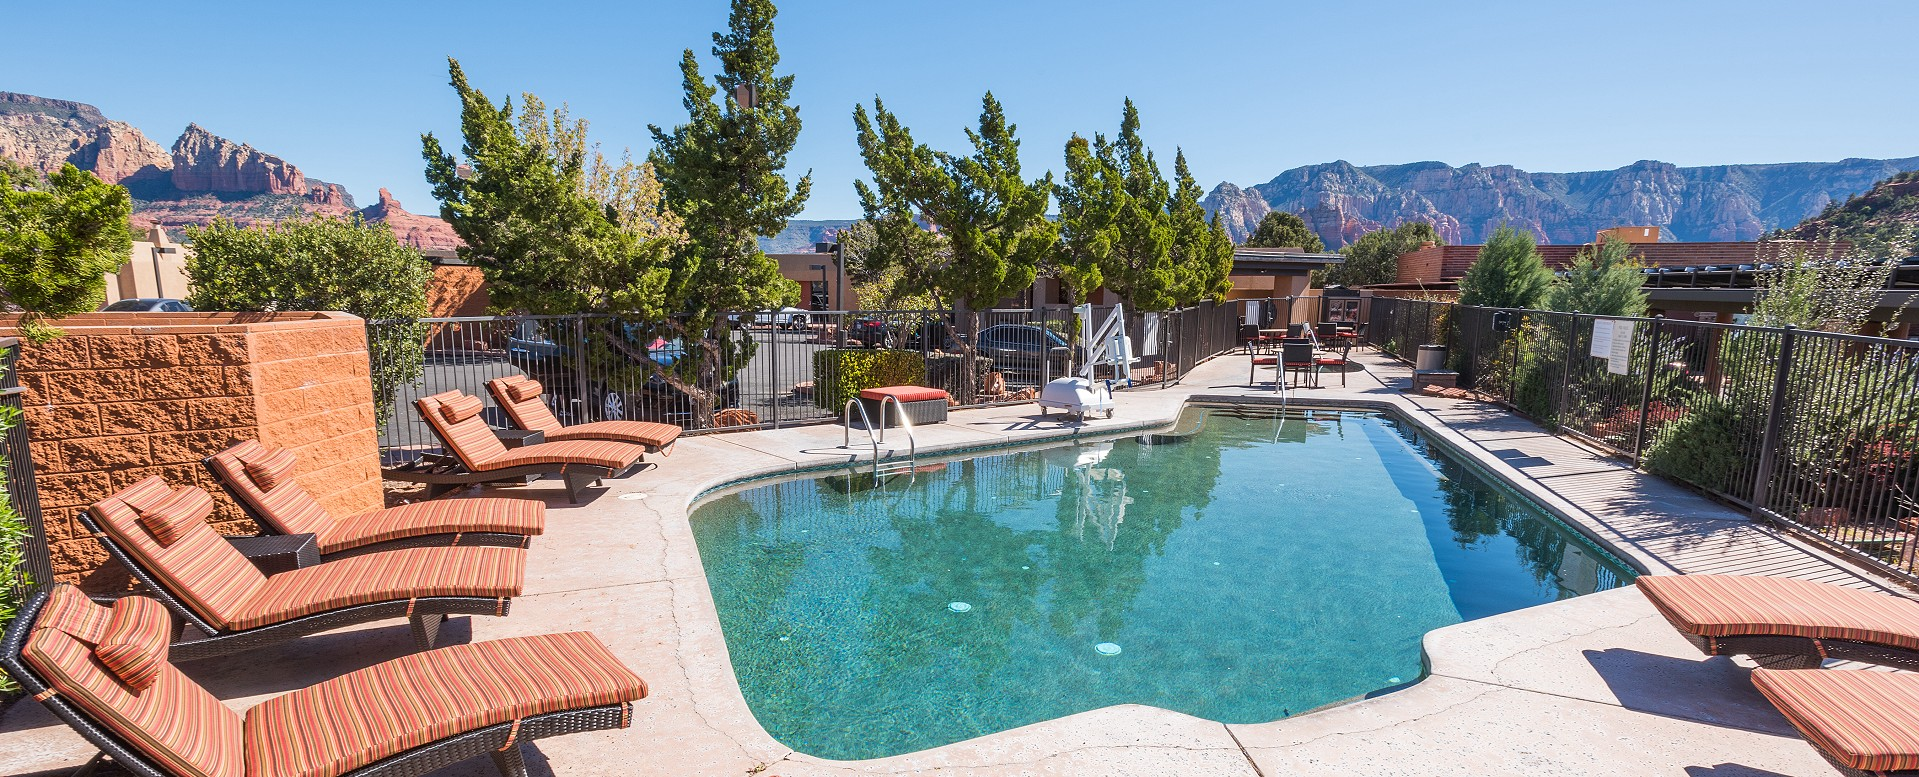 Best Western Plus Inn of Sedona-Pool Area